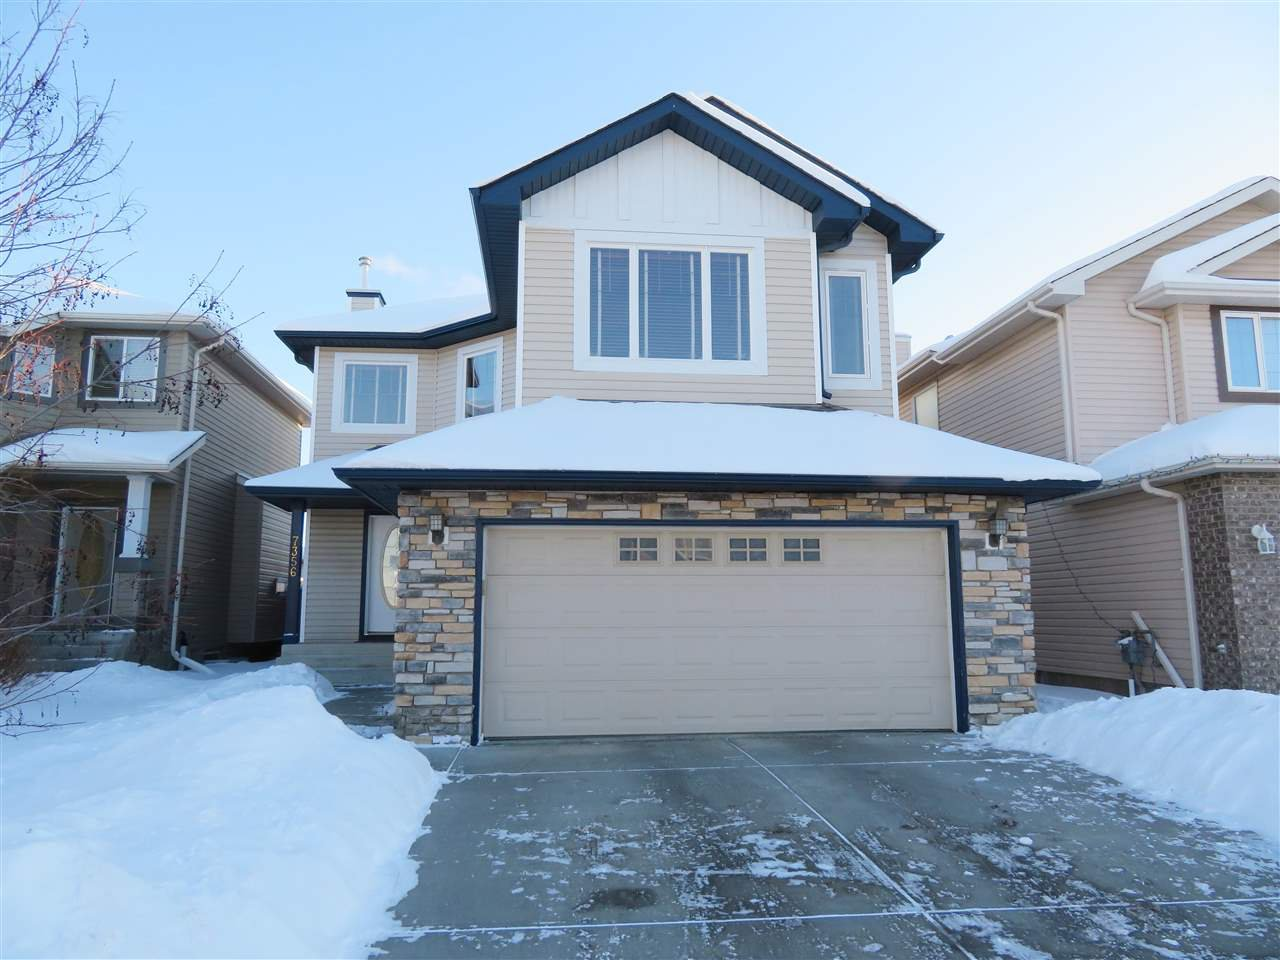 Main Photo: 7356 SINGER Way in Edmonton: Zone 14 House for sale : MLS®# E4179683